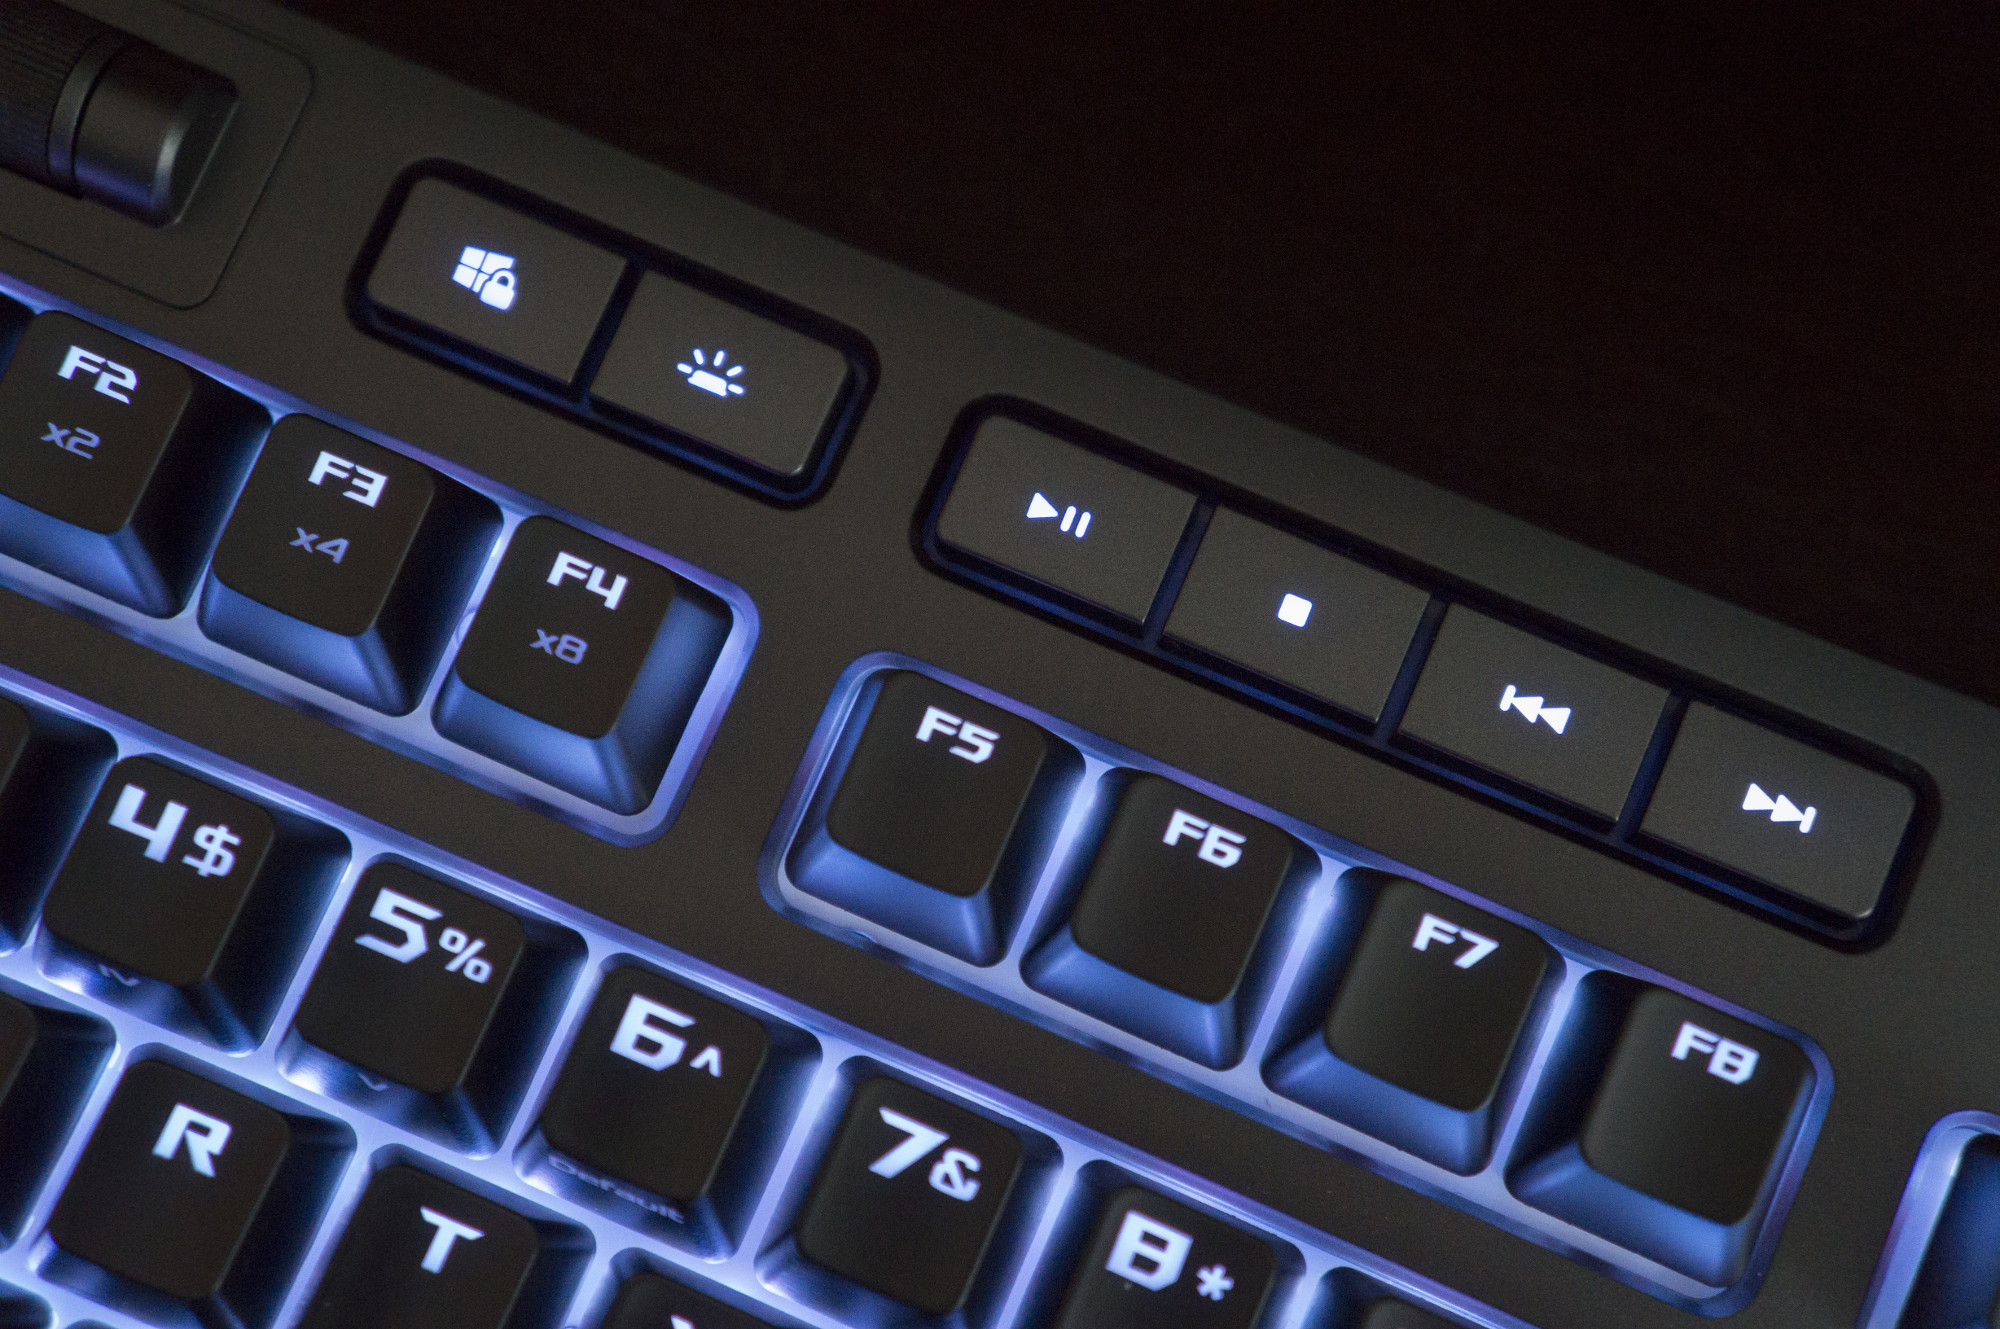 The ROG Strix Flare is a customizable keyboard that you can